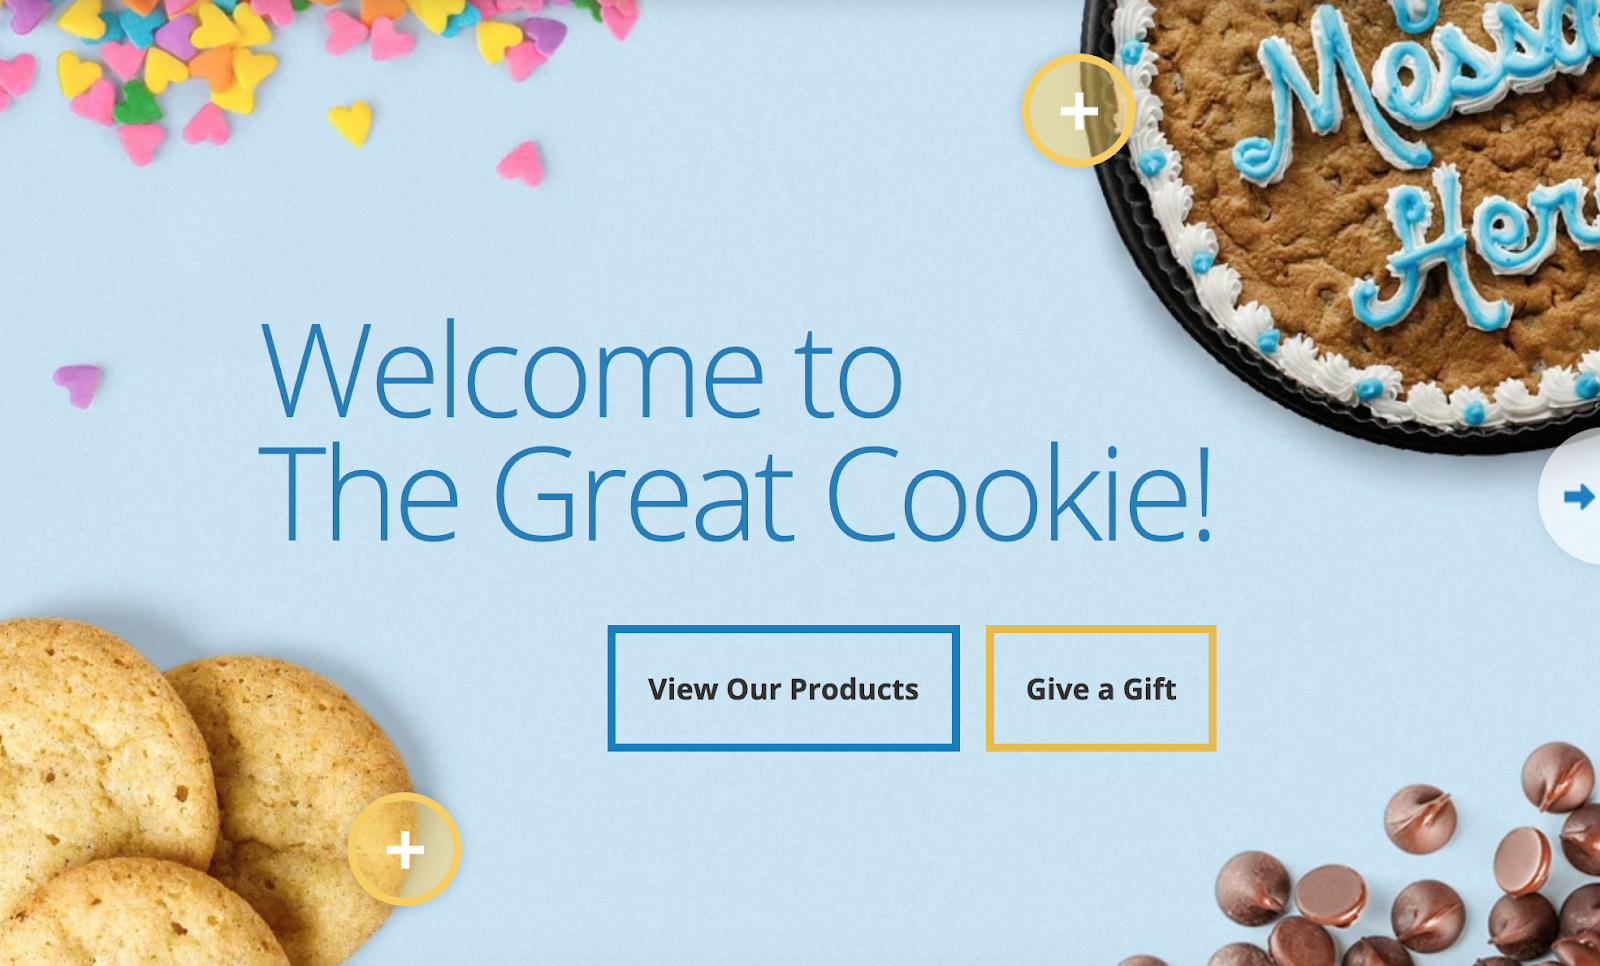 The Great Cookie homepage with cookie cake in the background